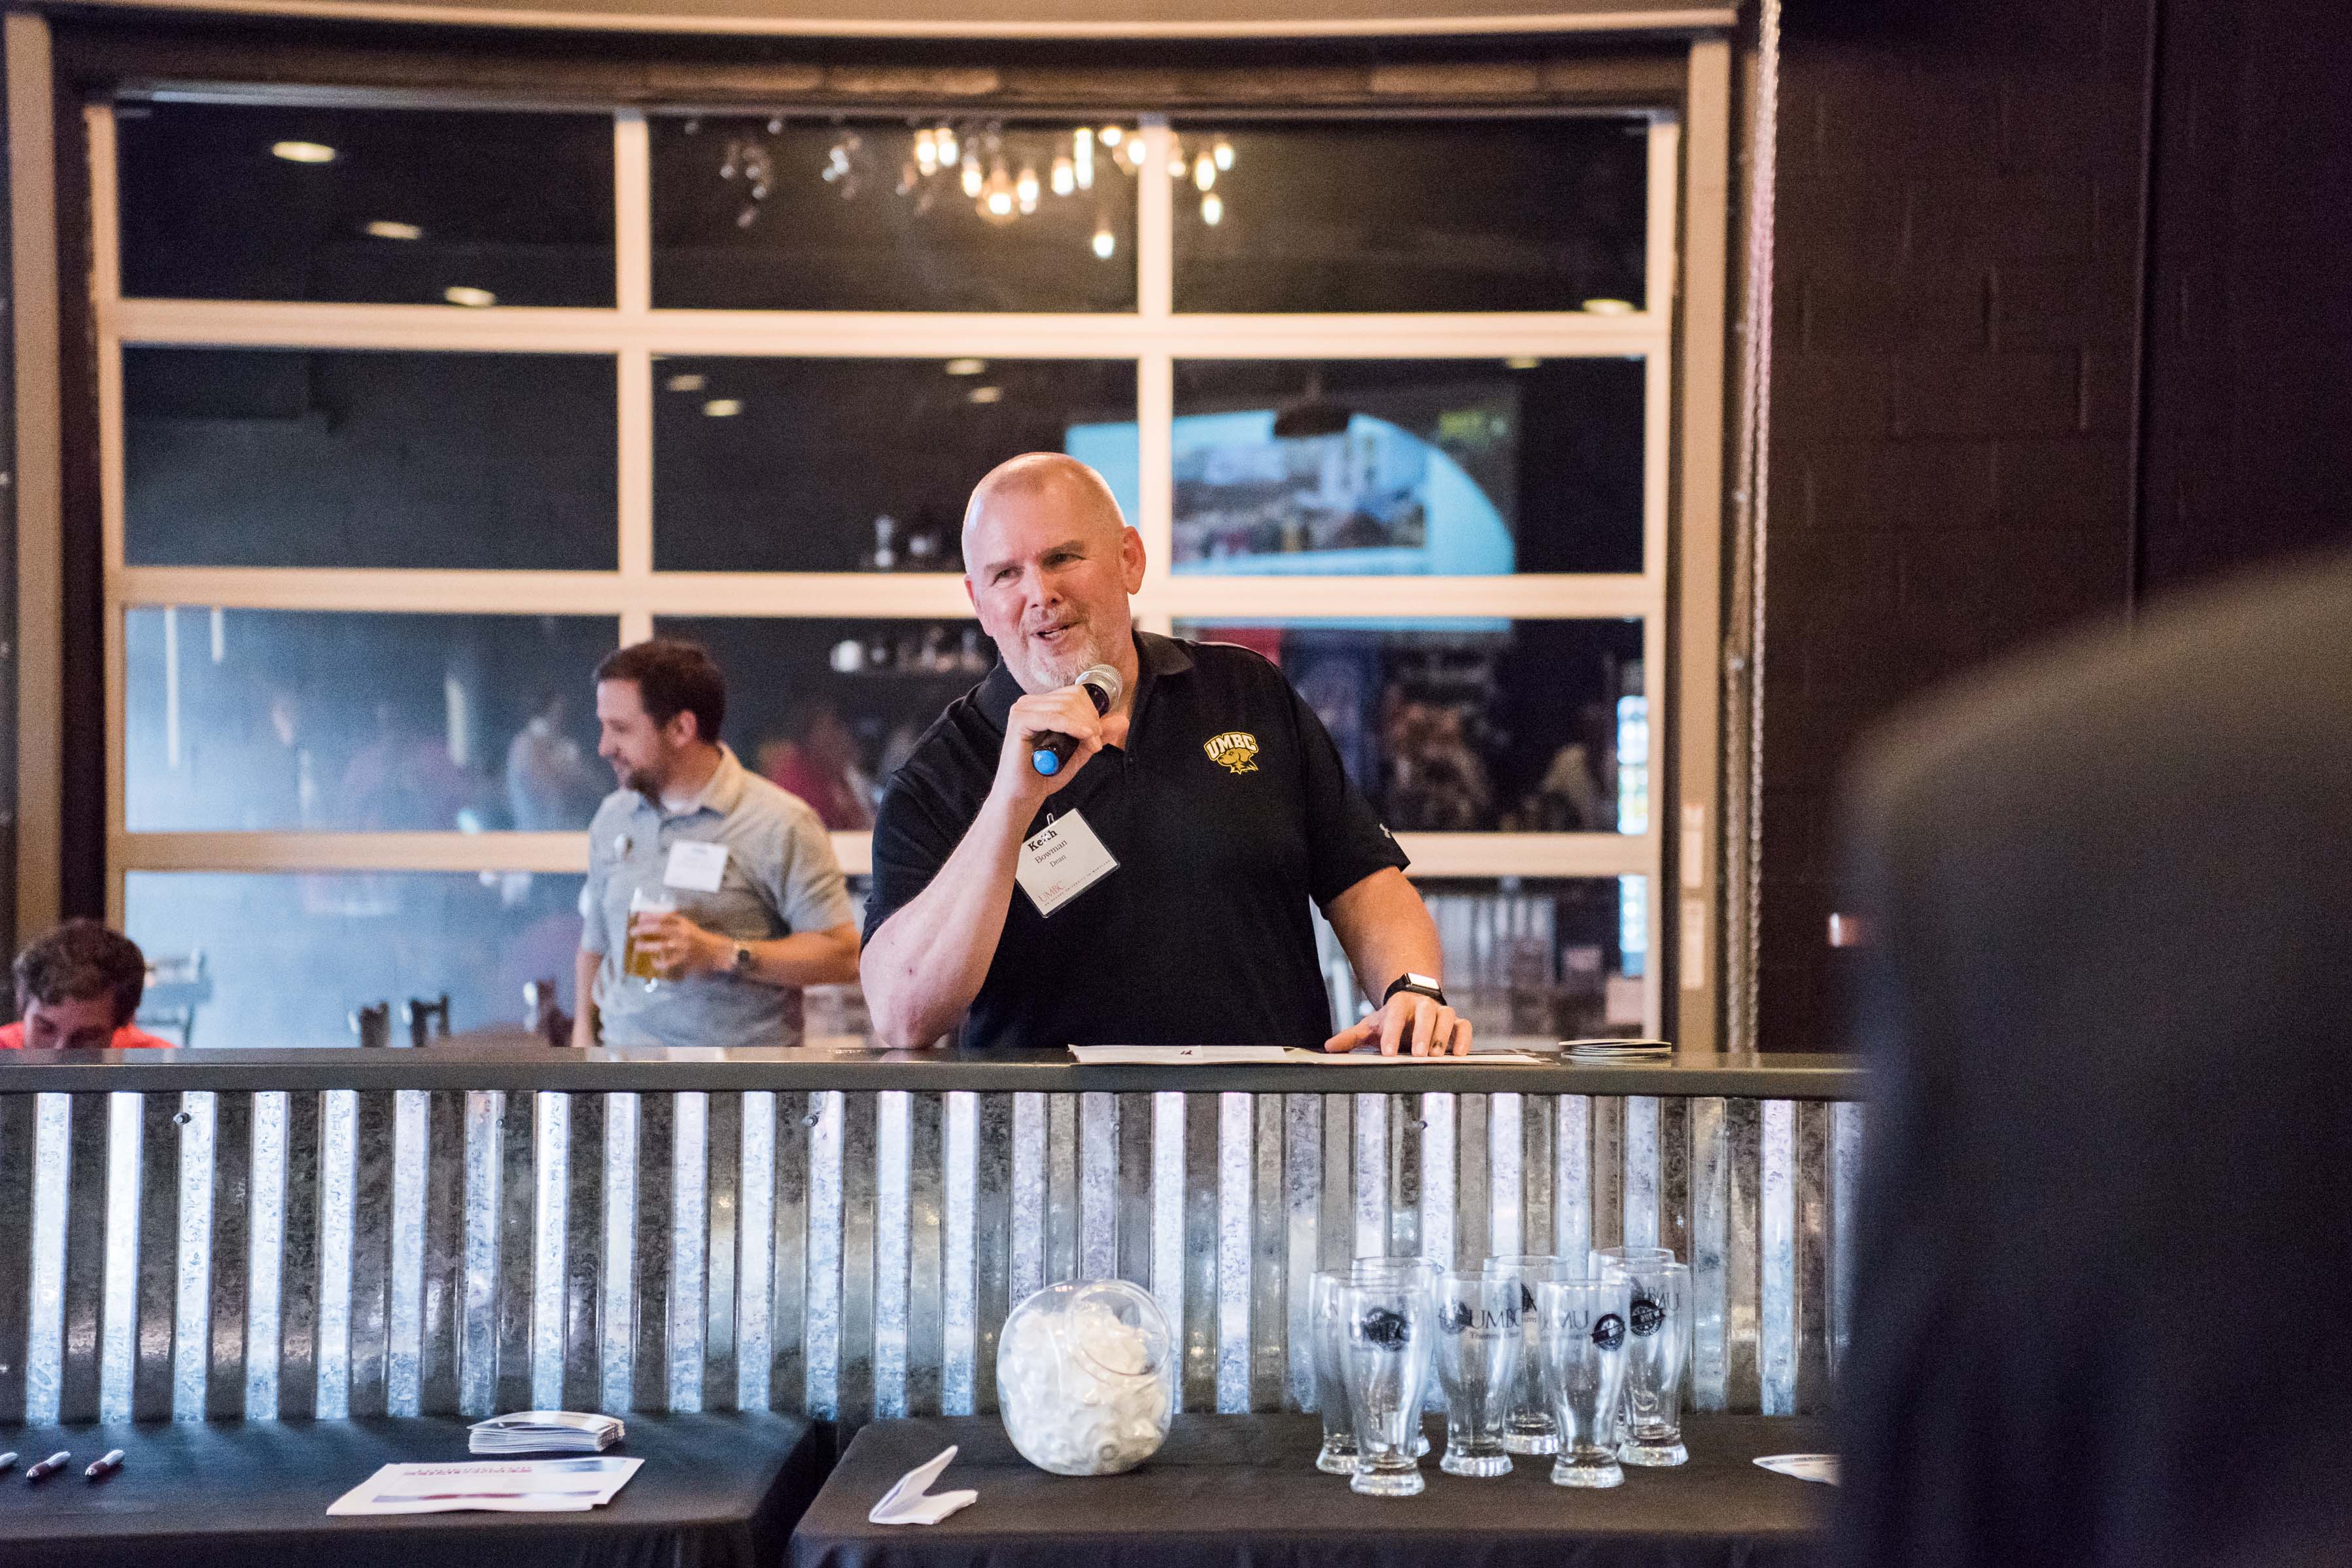 Man on microphone giving speech at Jailbreak brewing company happy hour